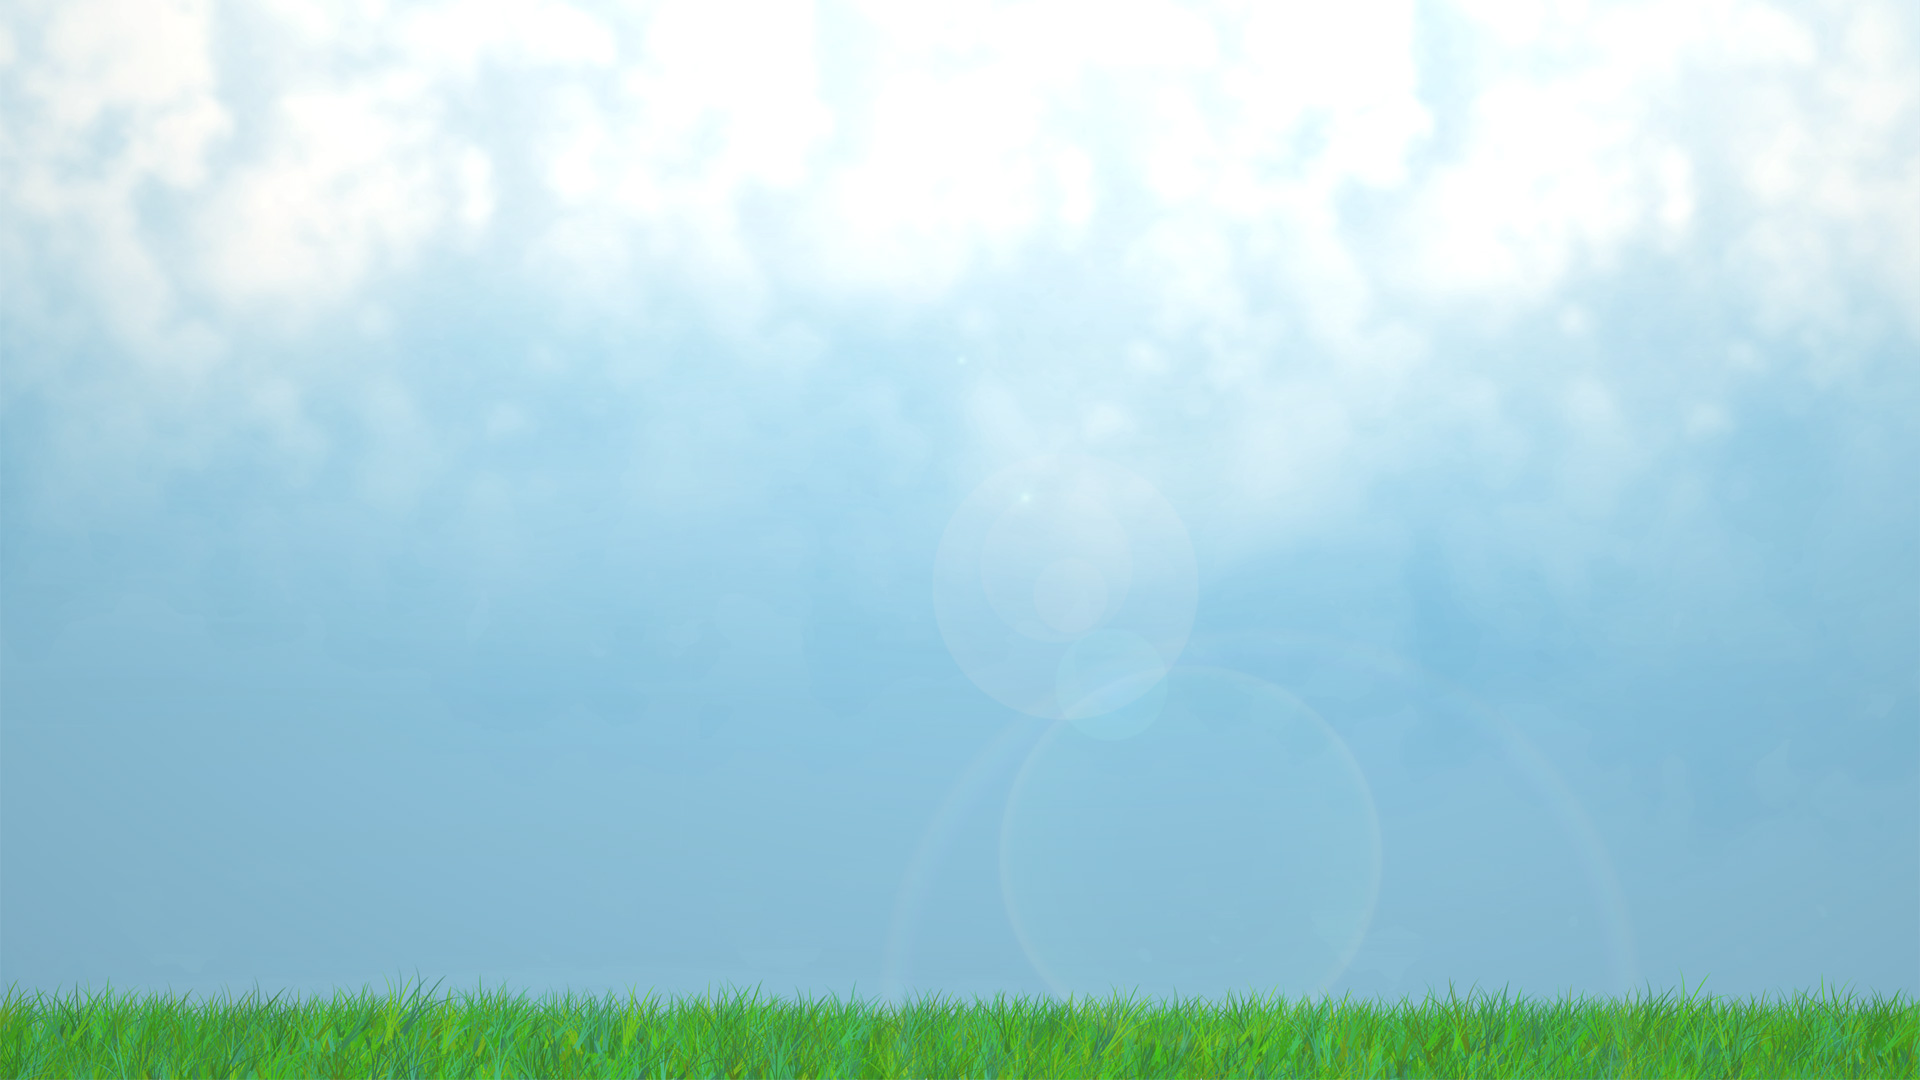 unibia s green grass and blue sky with clouds landscape wallpaper 1920x1080